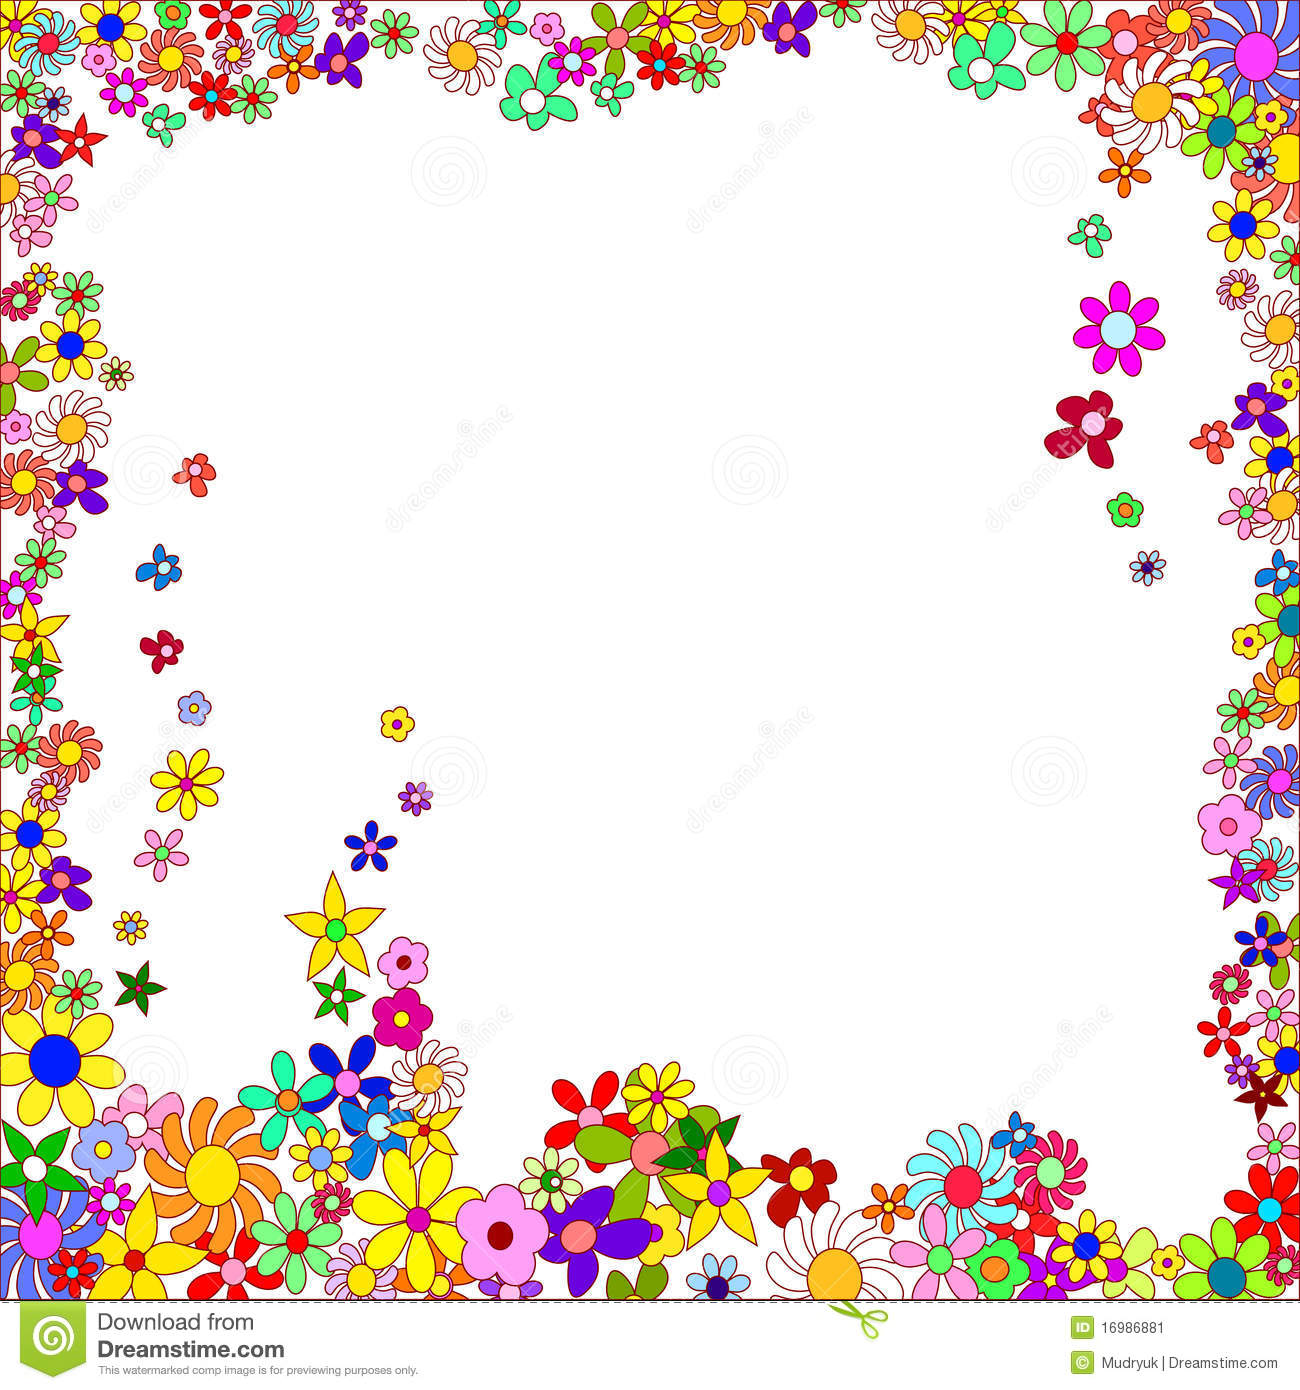 Frame Of Colorful Flowers Stock Image - Image: 16986881